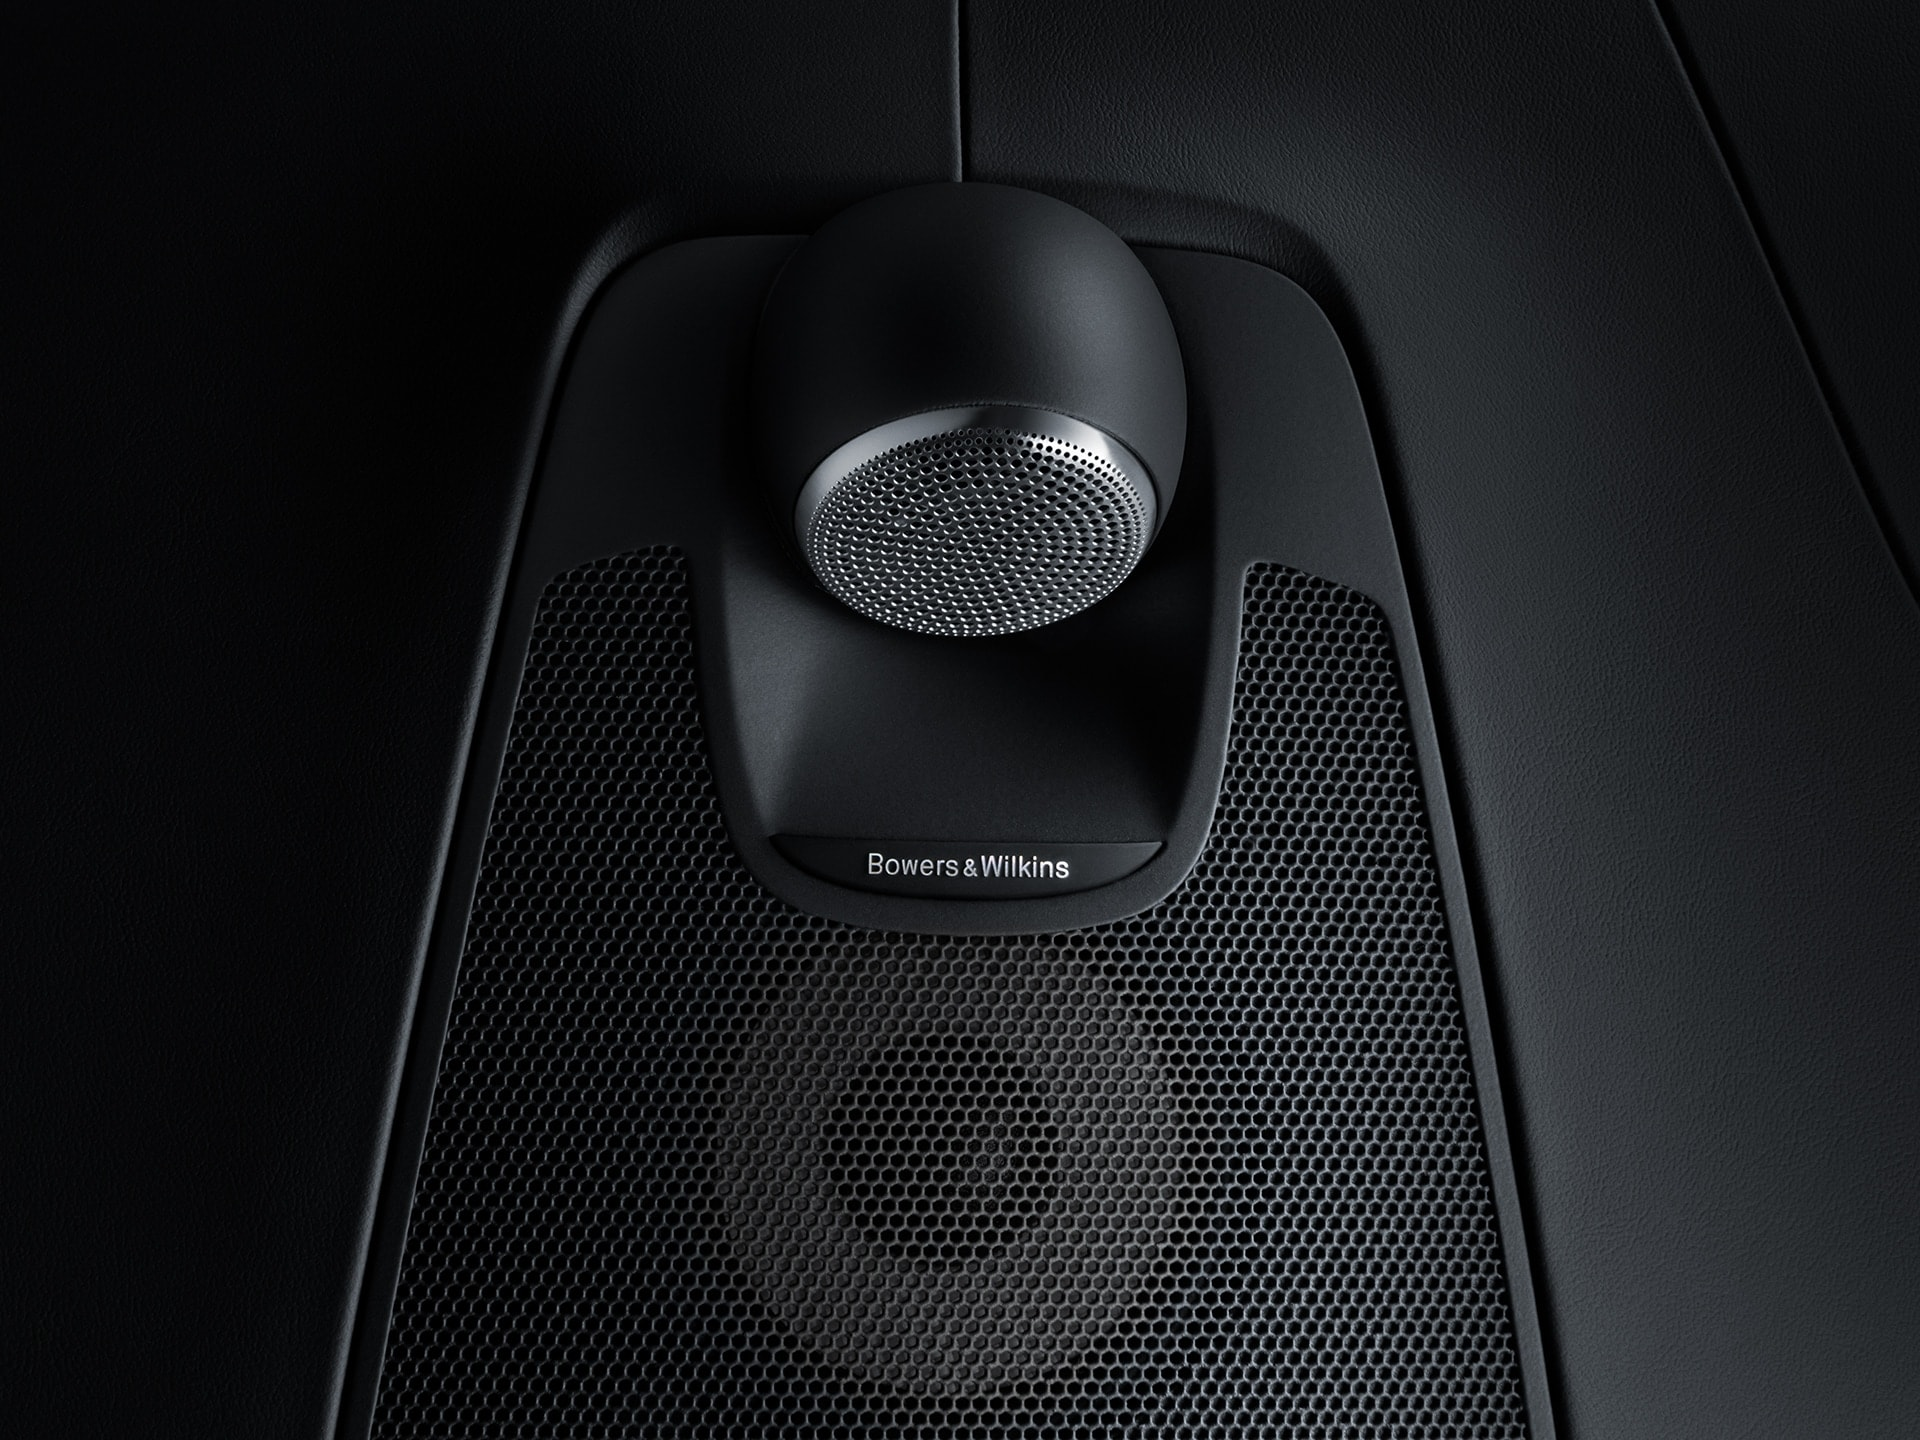 Bowers & Wilkins-Audiosystem in einem Volvo XC60